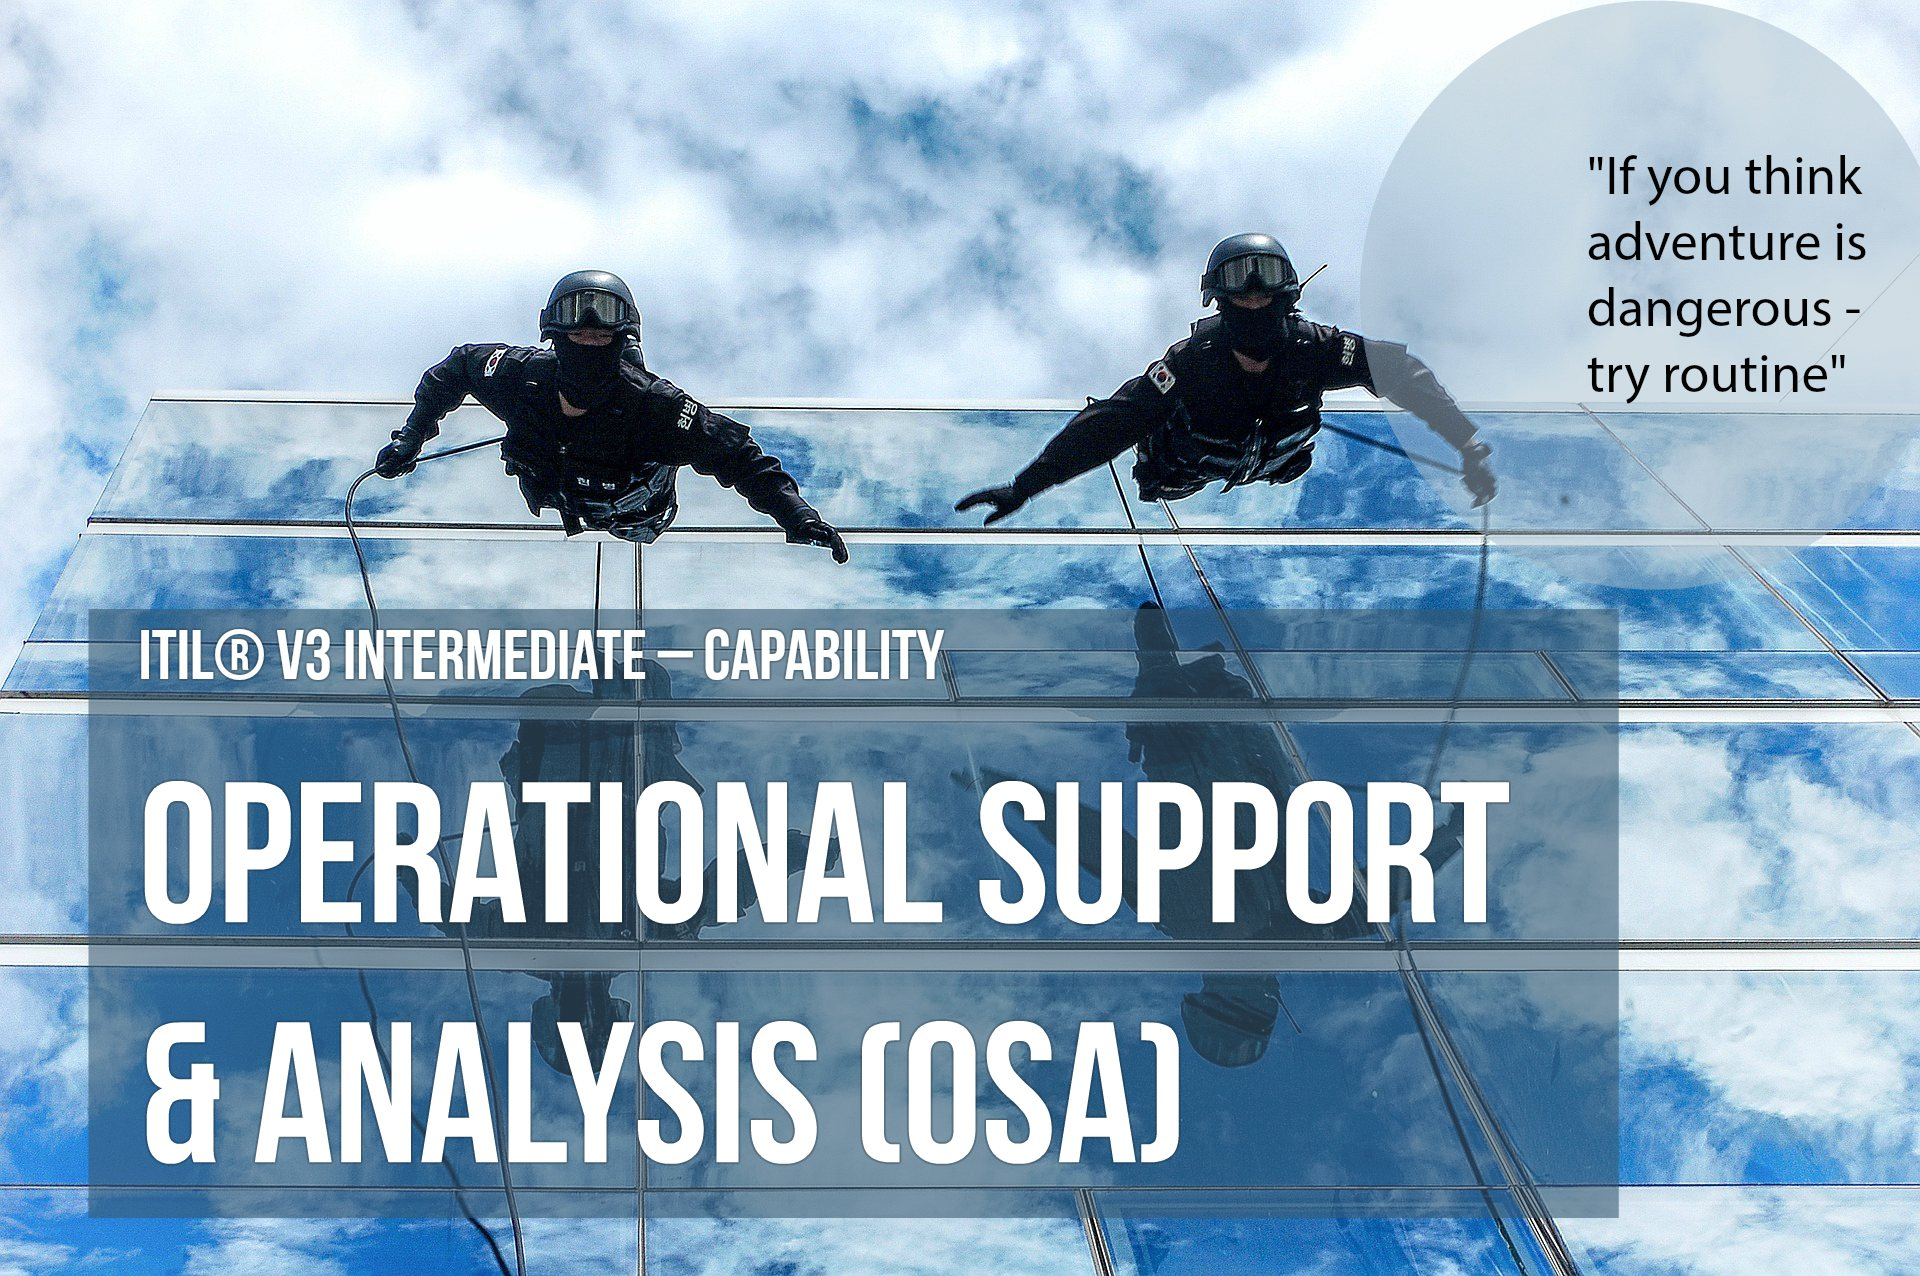 ITS Partner - Edukacija - ITIL® v3 Intermediate - Capability - Operational Support and Analysis (OSA)